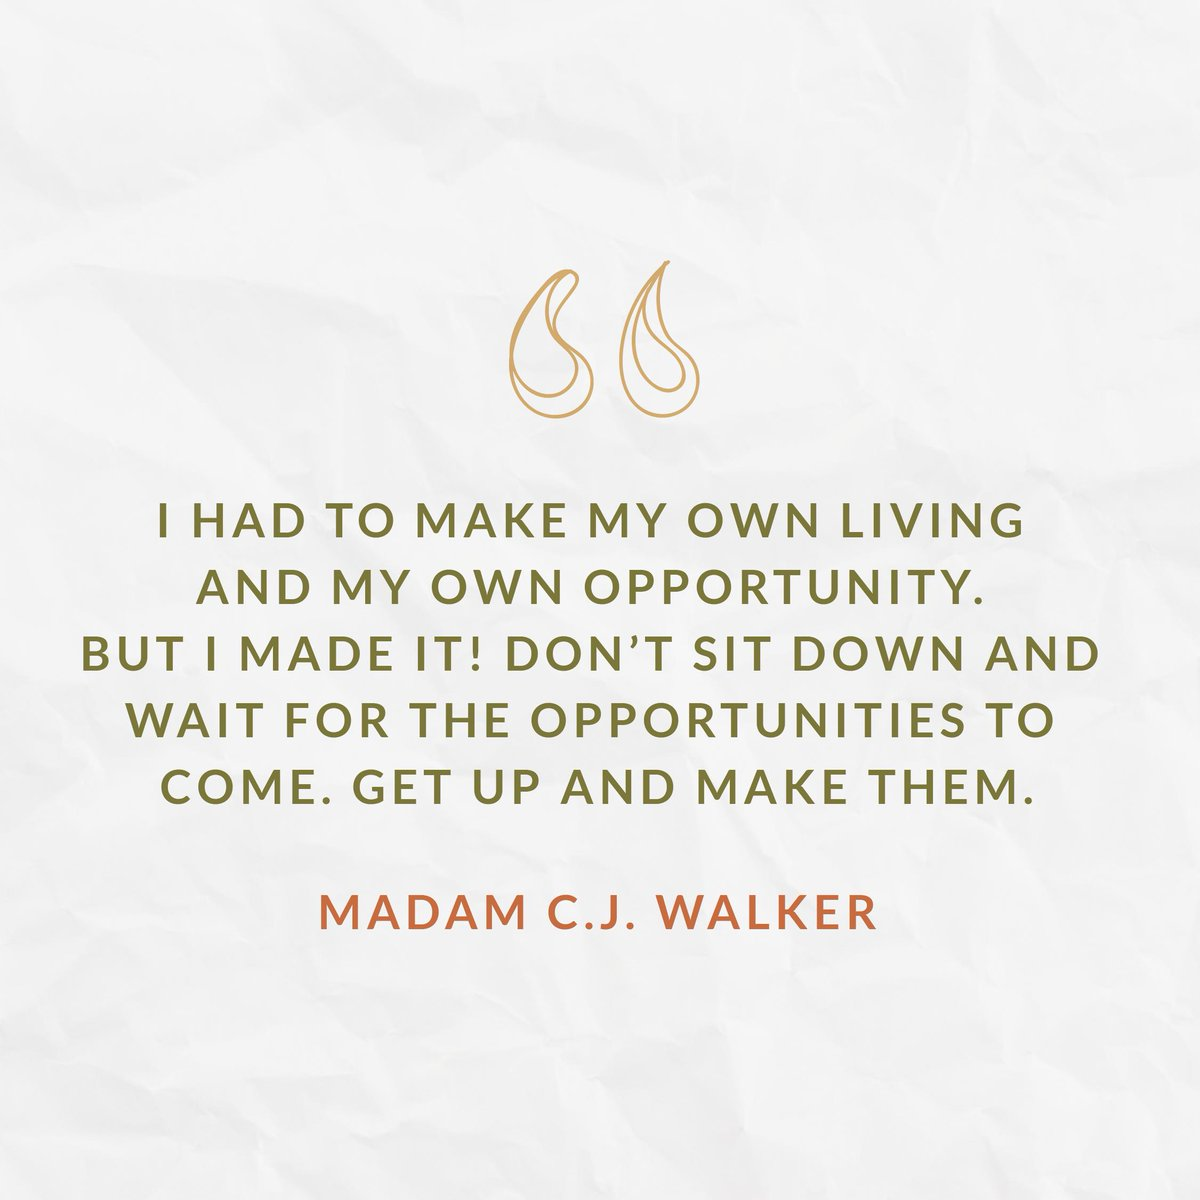 We'll leave you with this immortal wisdom from Madam C.J. Walker, who was not only the wealthiest Black businesswoman in America due to her successful line of hair care products, but also the first self-made woman millionaire in America.  #BlackWomensEqualPayDay<br>http://pic.twitter.com/94rjLsOwrM